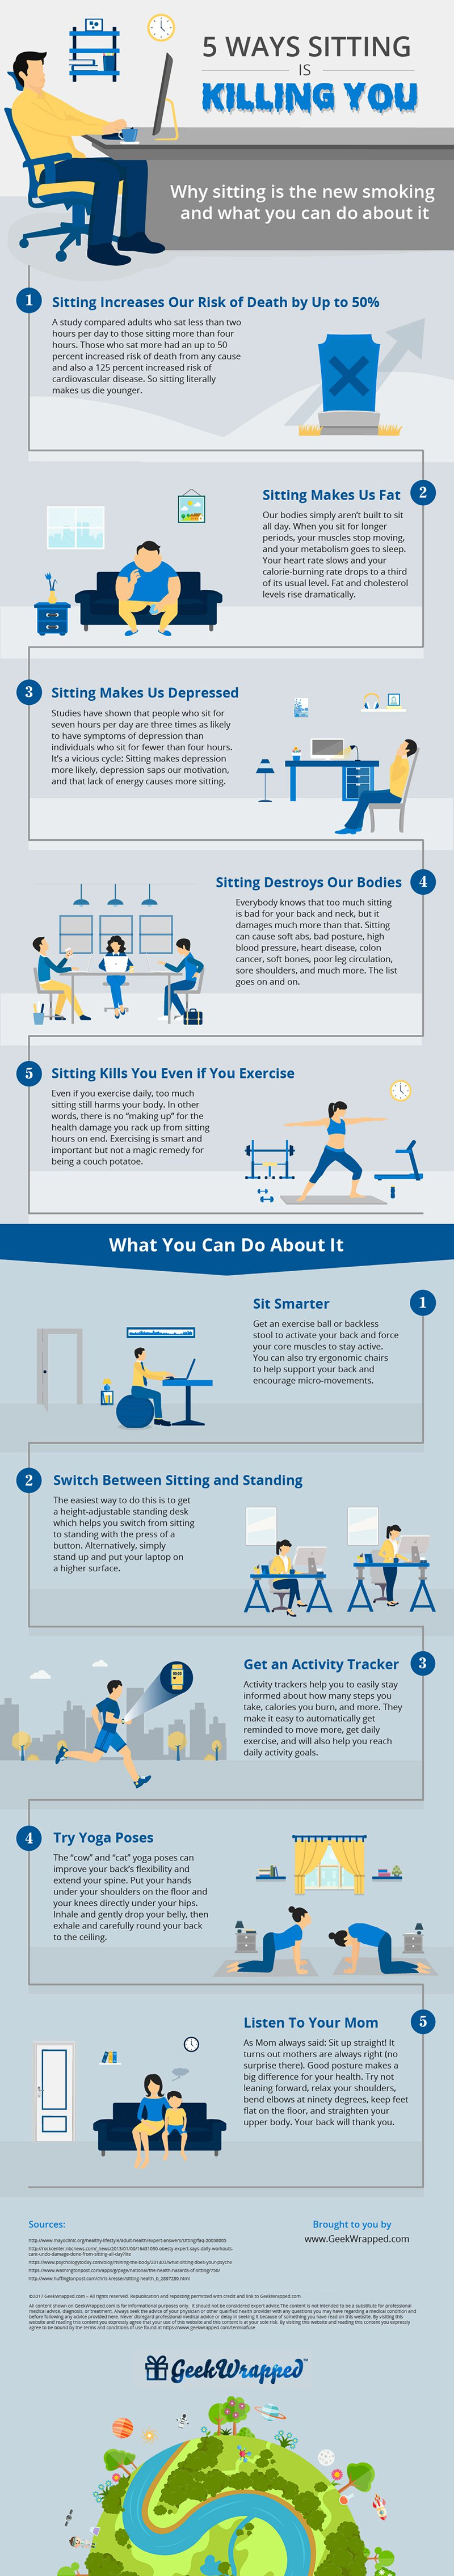 5 Ways Sitting is Killing You by GeekWrapped